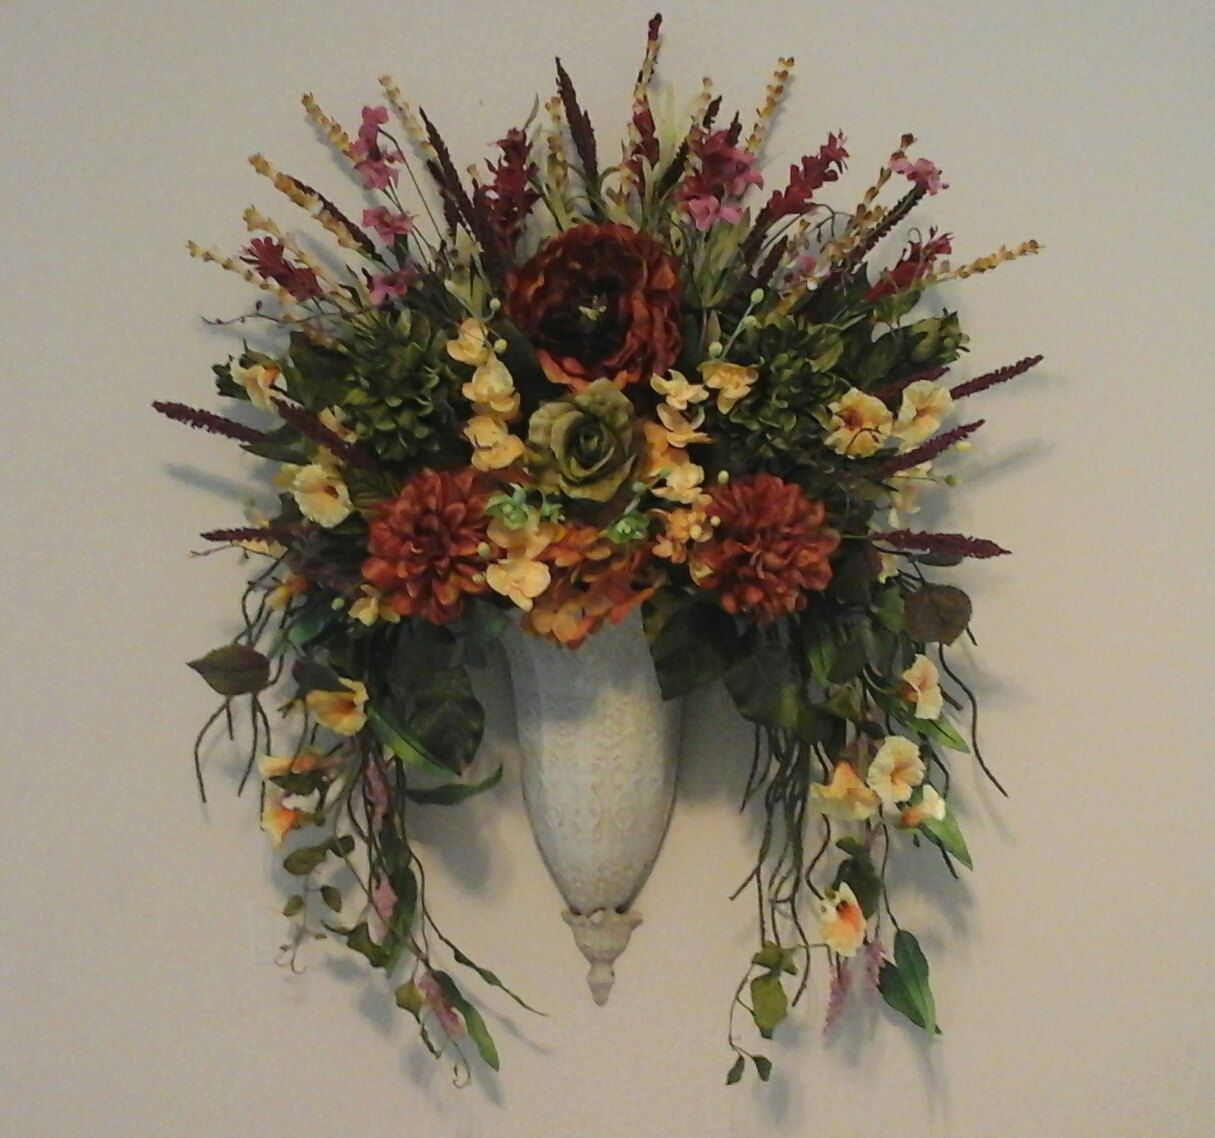 Wall Sconces With Flowers: Tuscan Floral Wall Sconce, Fall Wall Planter,Wall Pocket